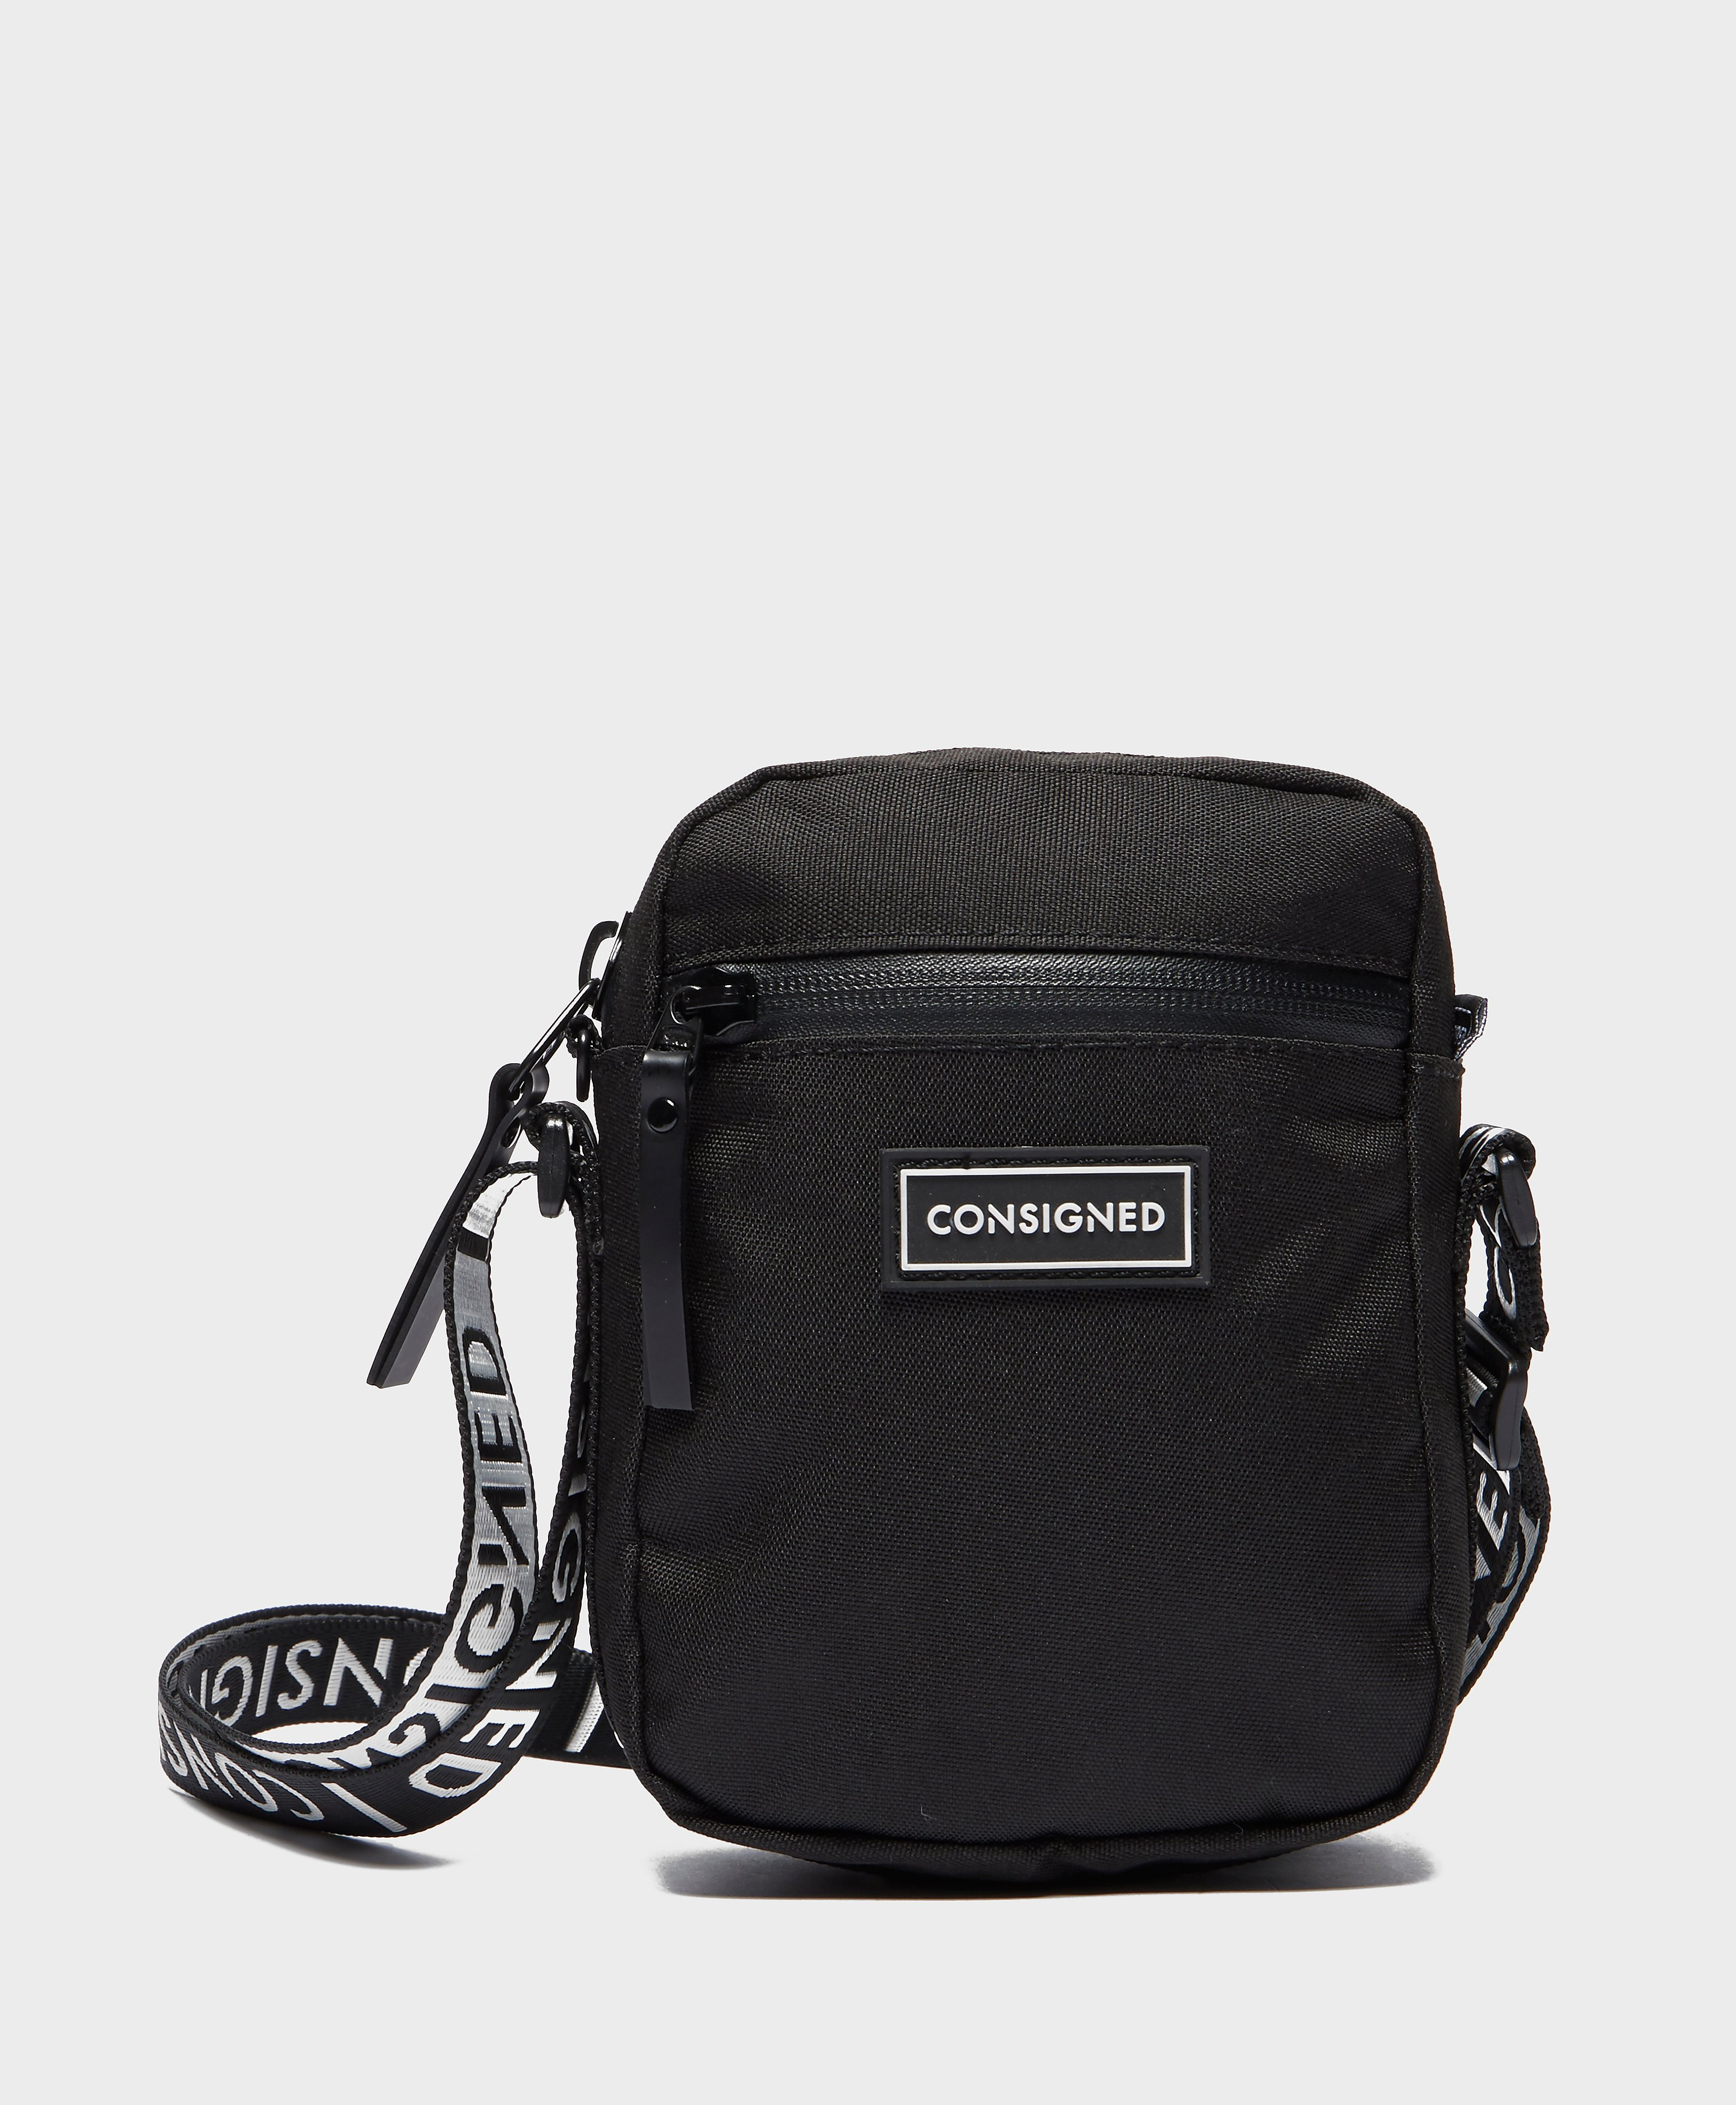 CONSIGNED Tape Small Item Bag - Online Exclusive